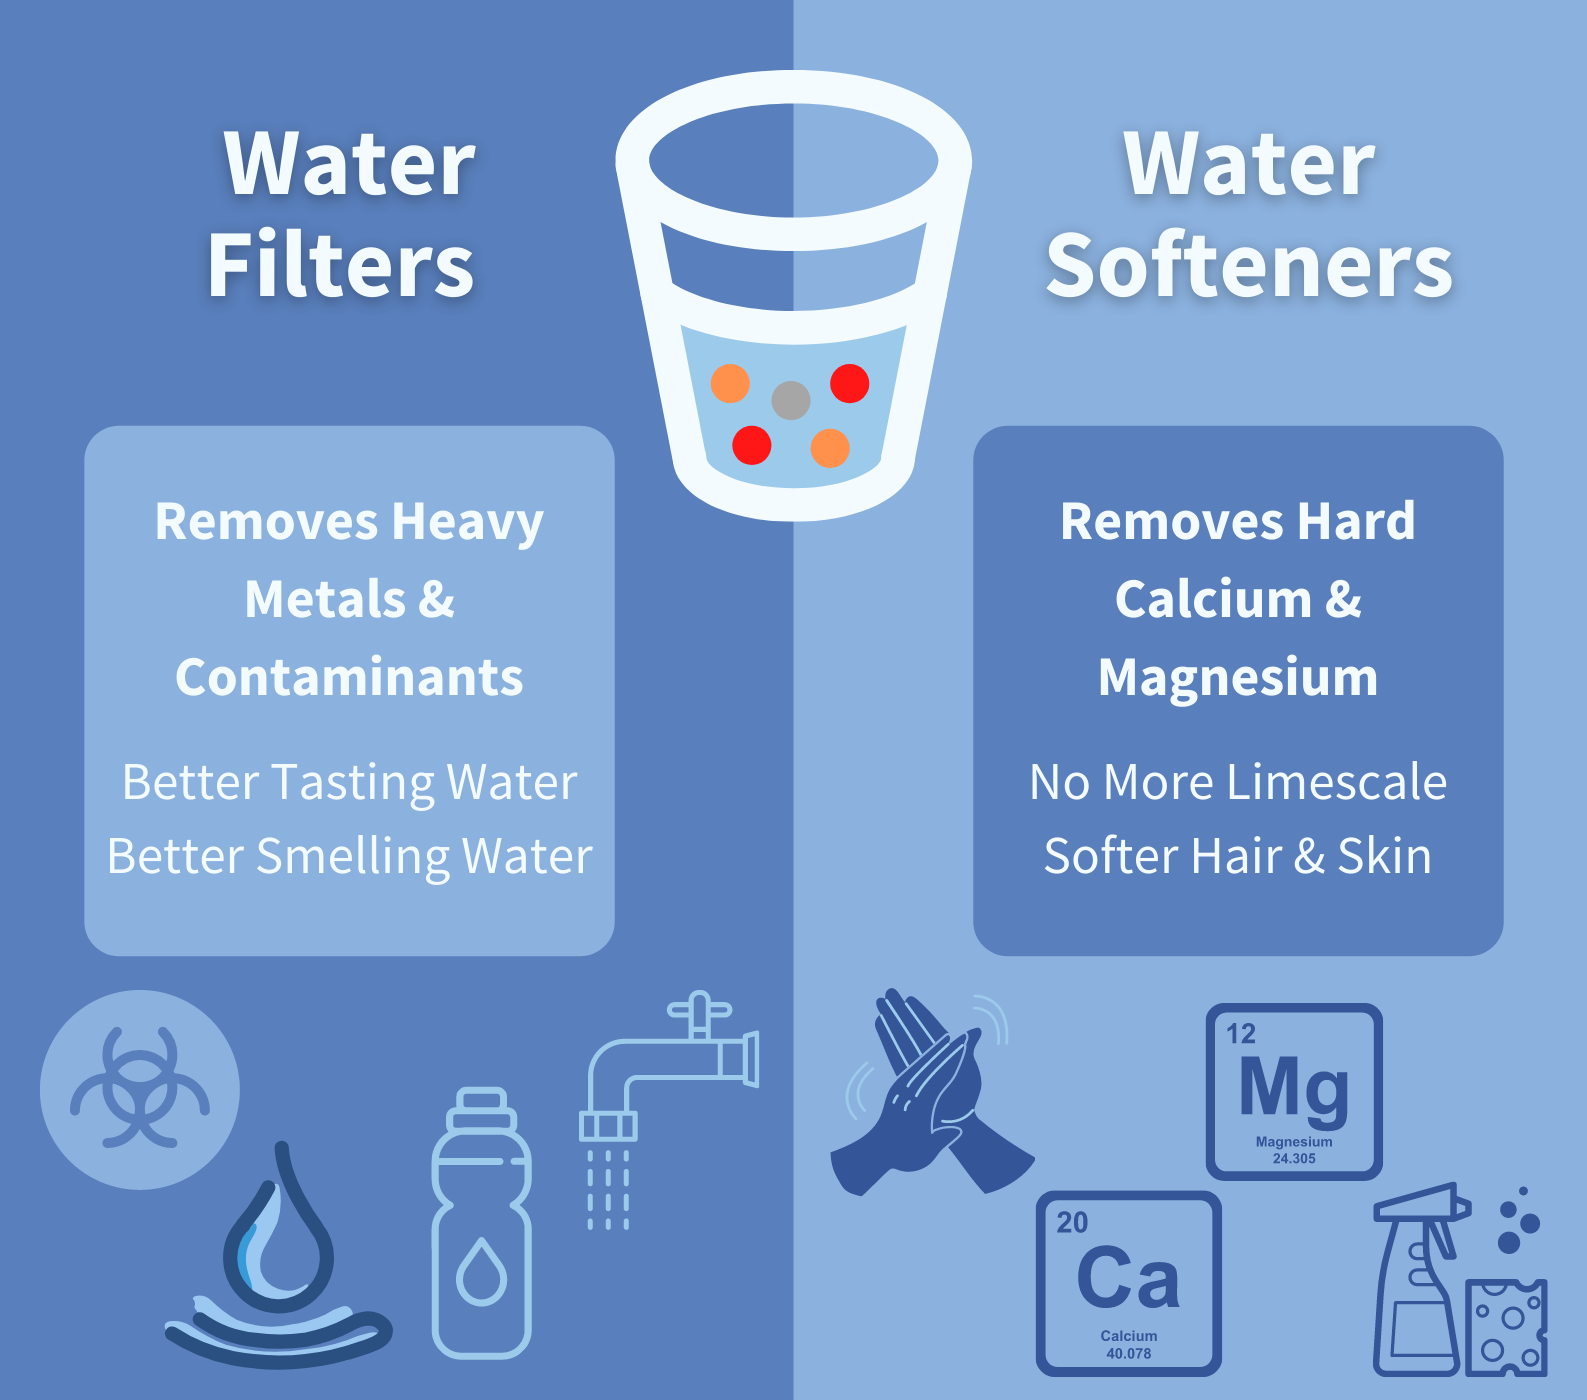 water filter systems vs water softeners infographic